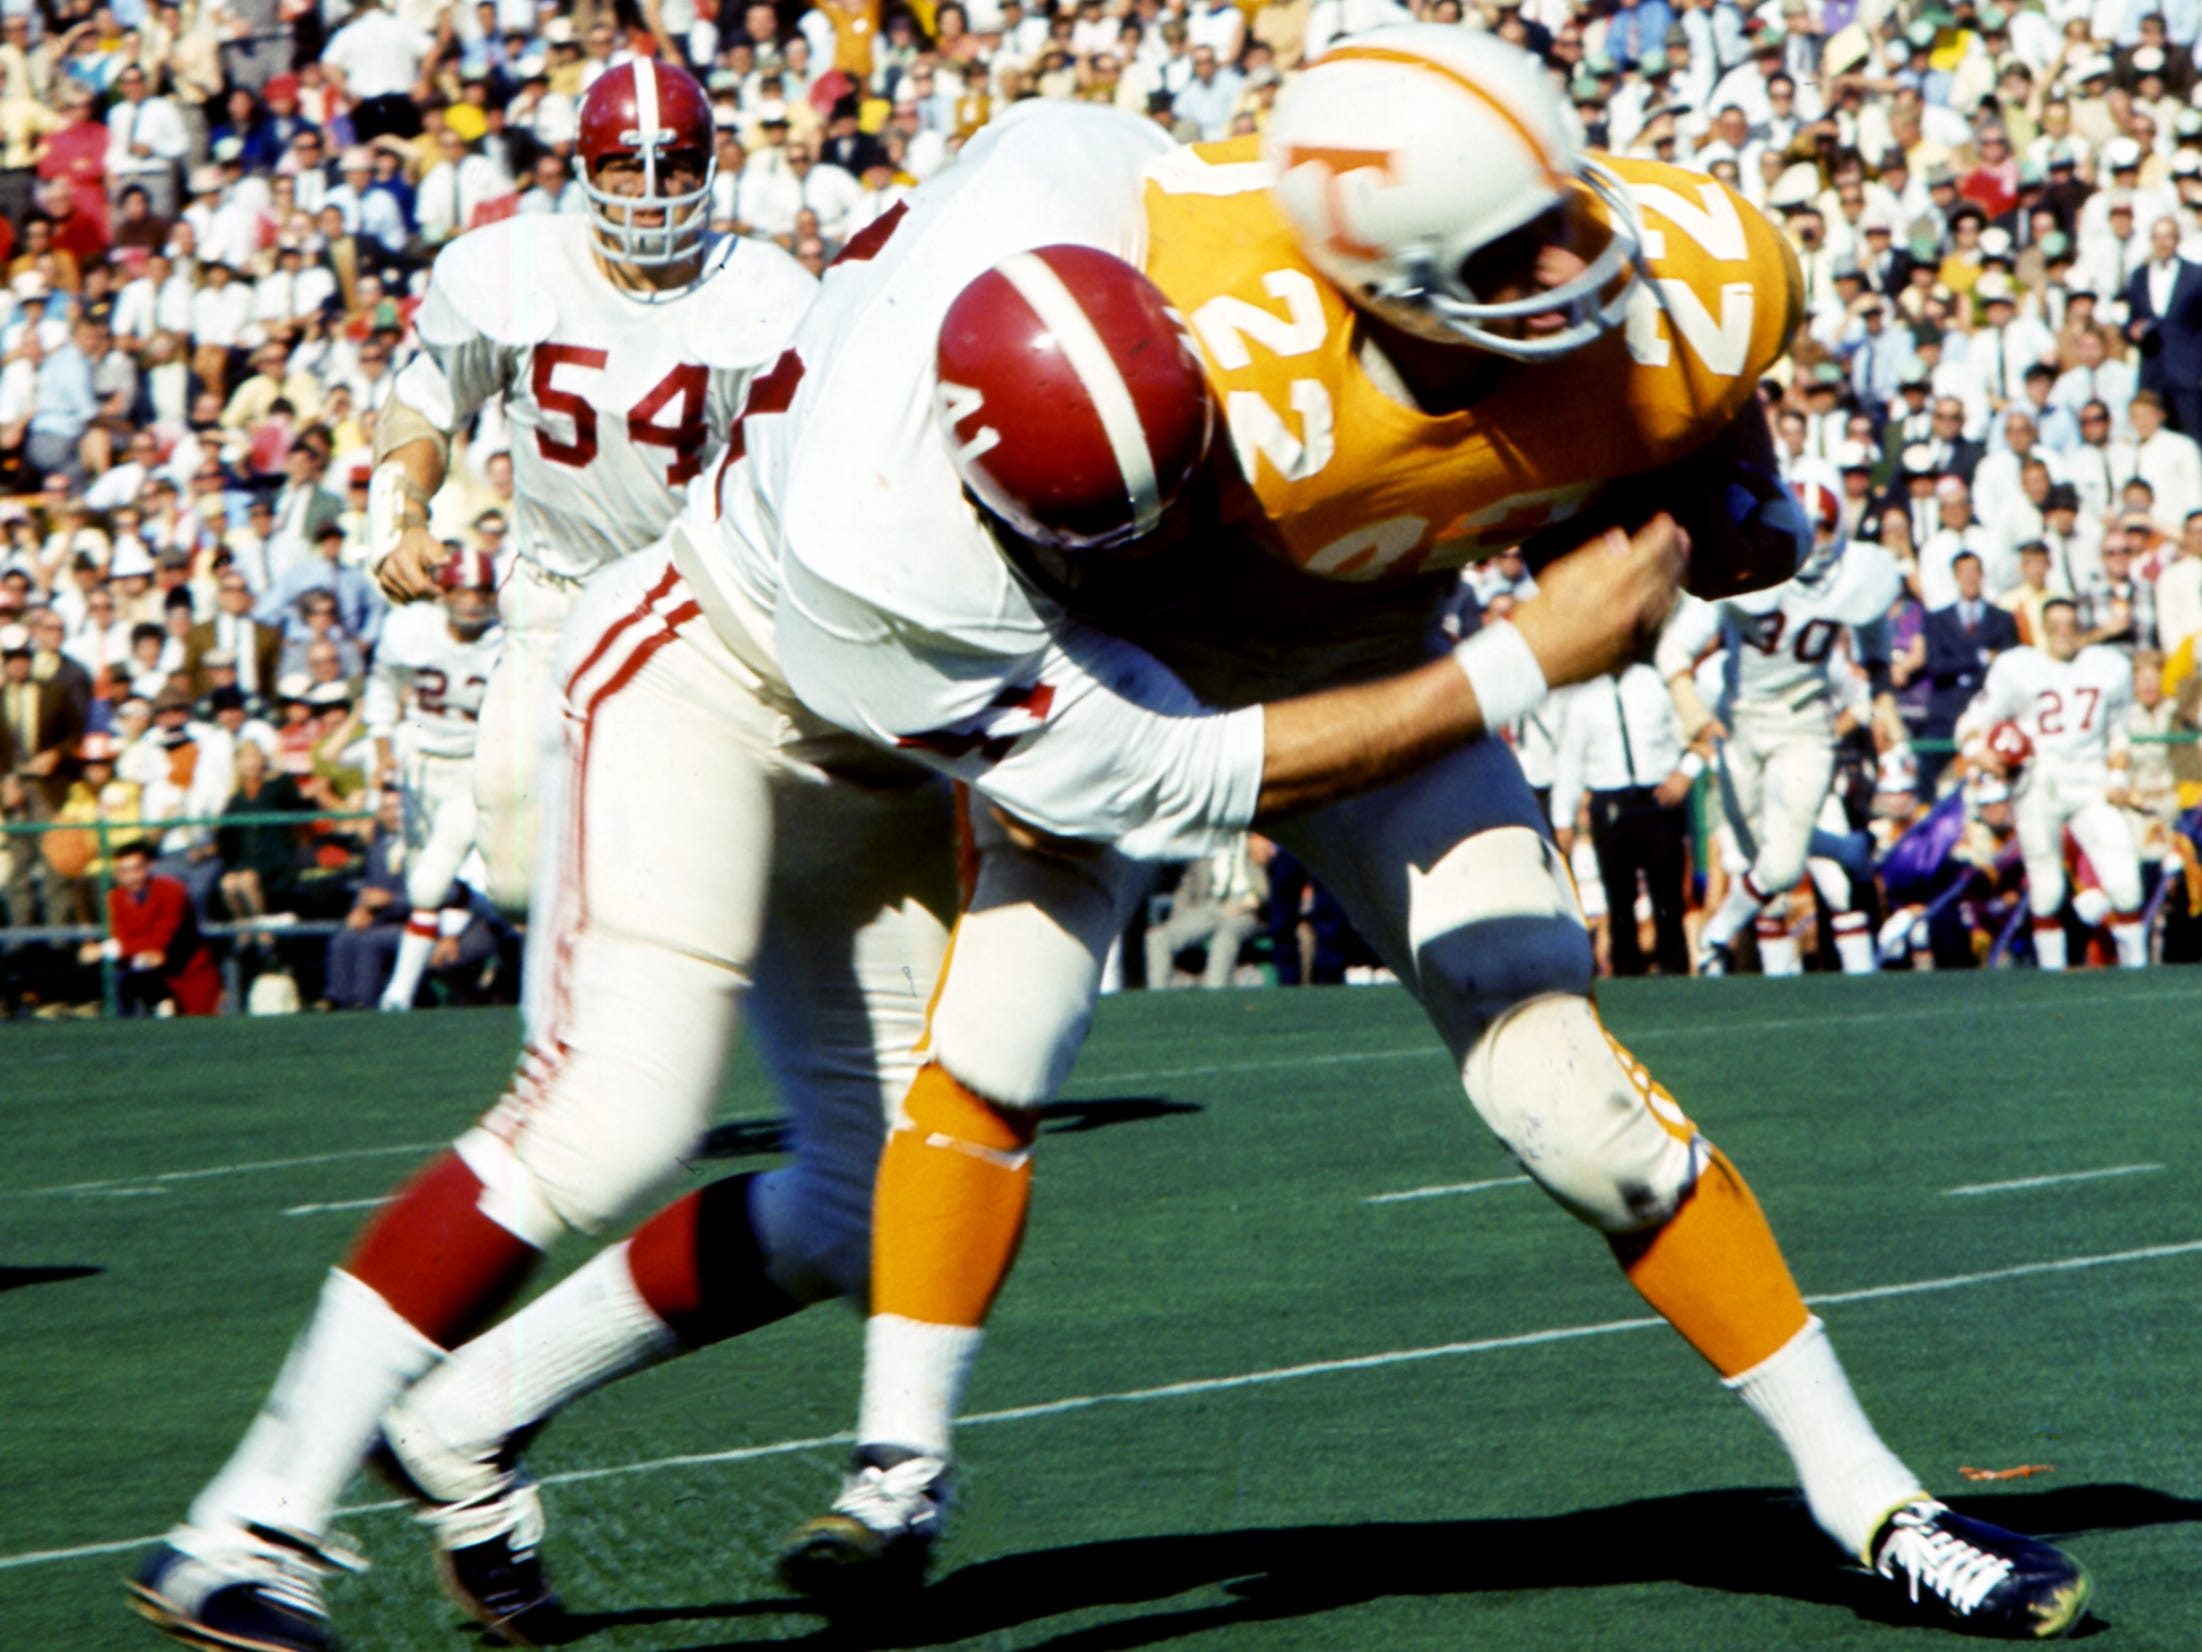 Tennessee senior back Richmond Flowers (22) attempts to fight off an Alabama defender. Flowers played his last game against his home state school by picking up 74 yards on 20 rushes and 37 more on five passes at Neyland Stadium Oct. 19, 1968.